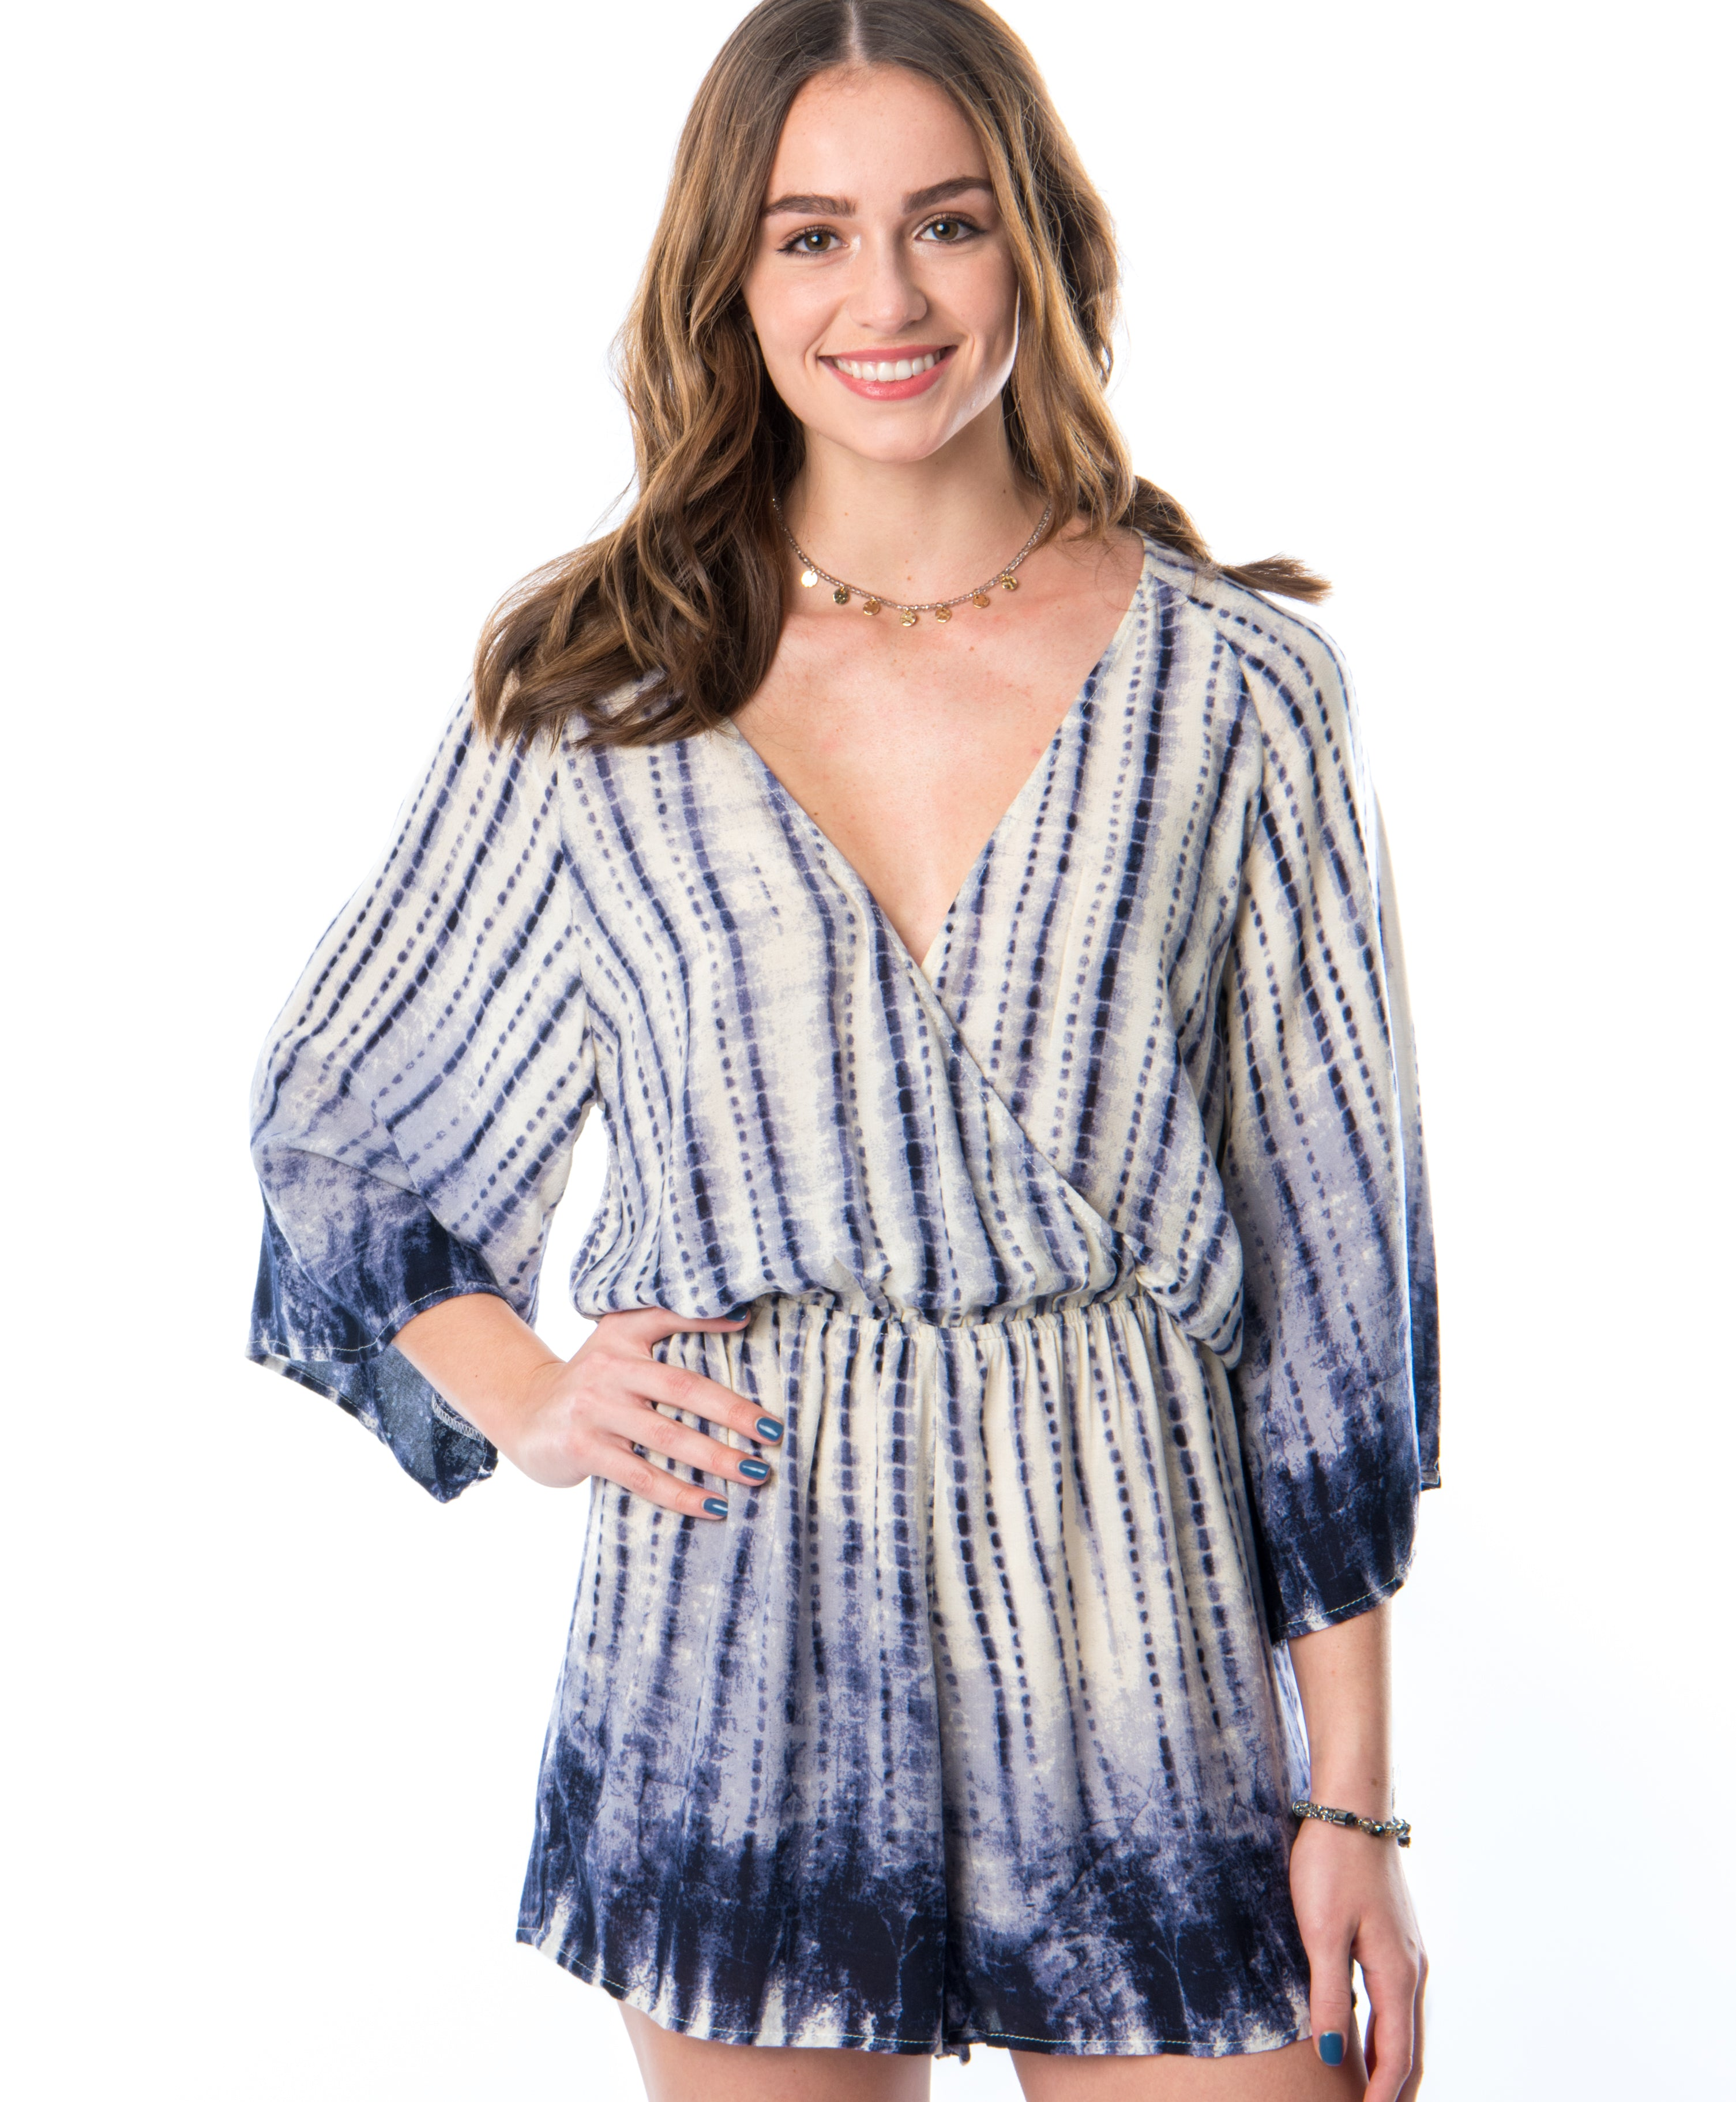 Oceana | Romper | Bailey Nicole - Women's Clothes for All Occasions